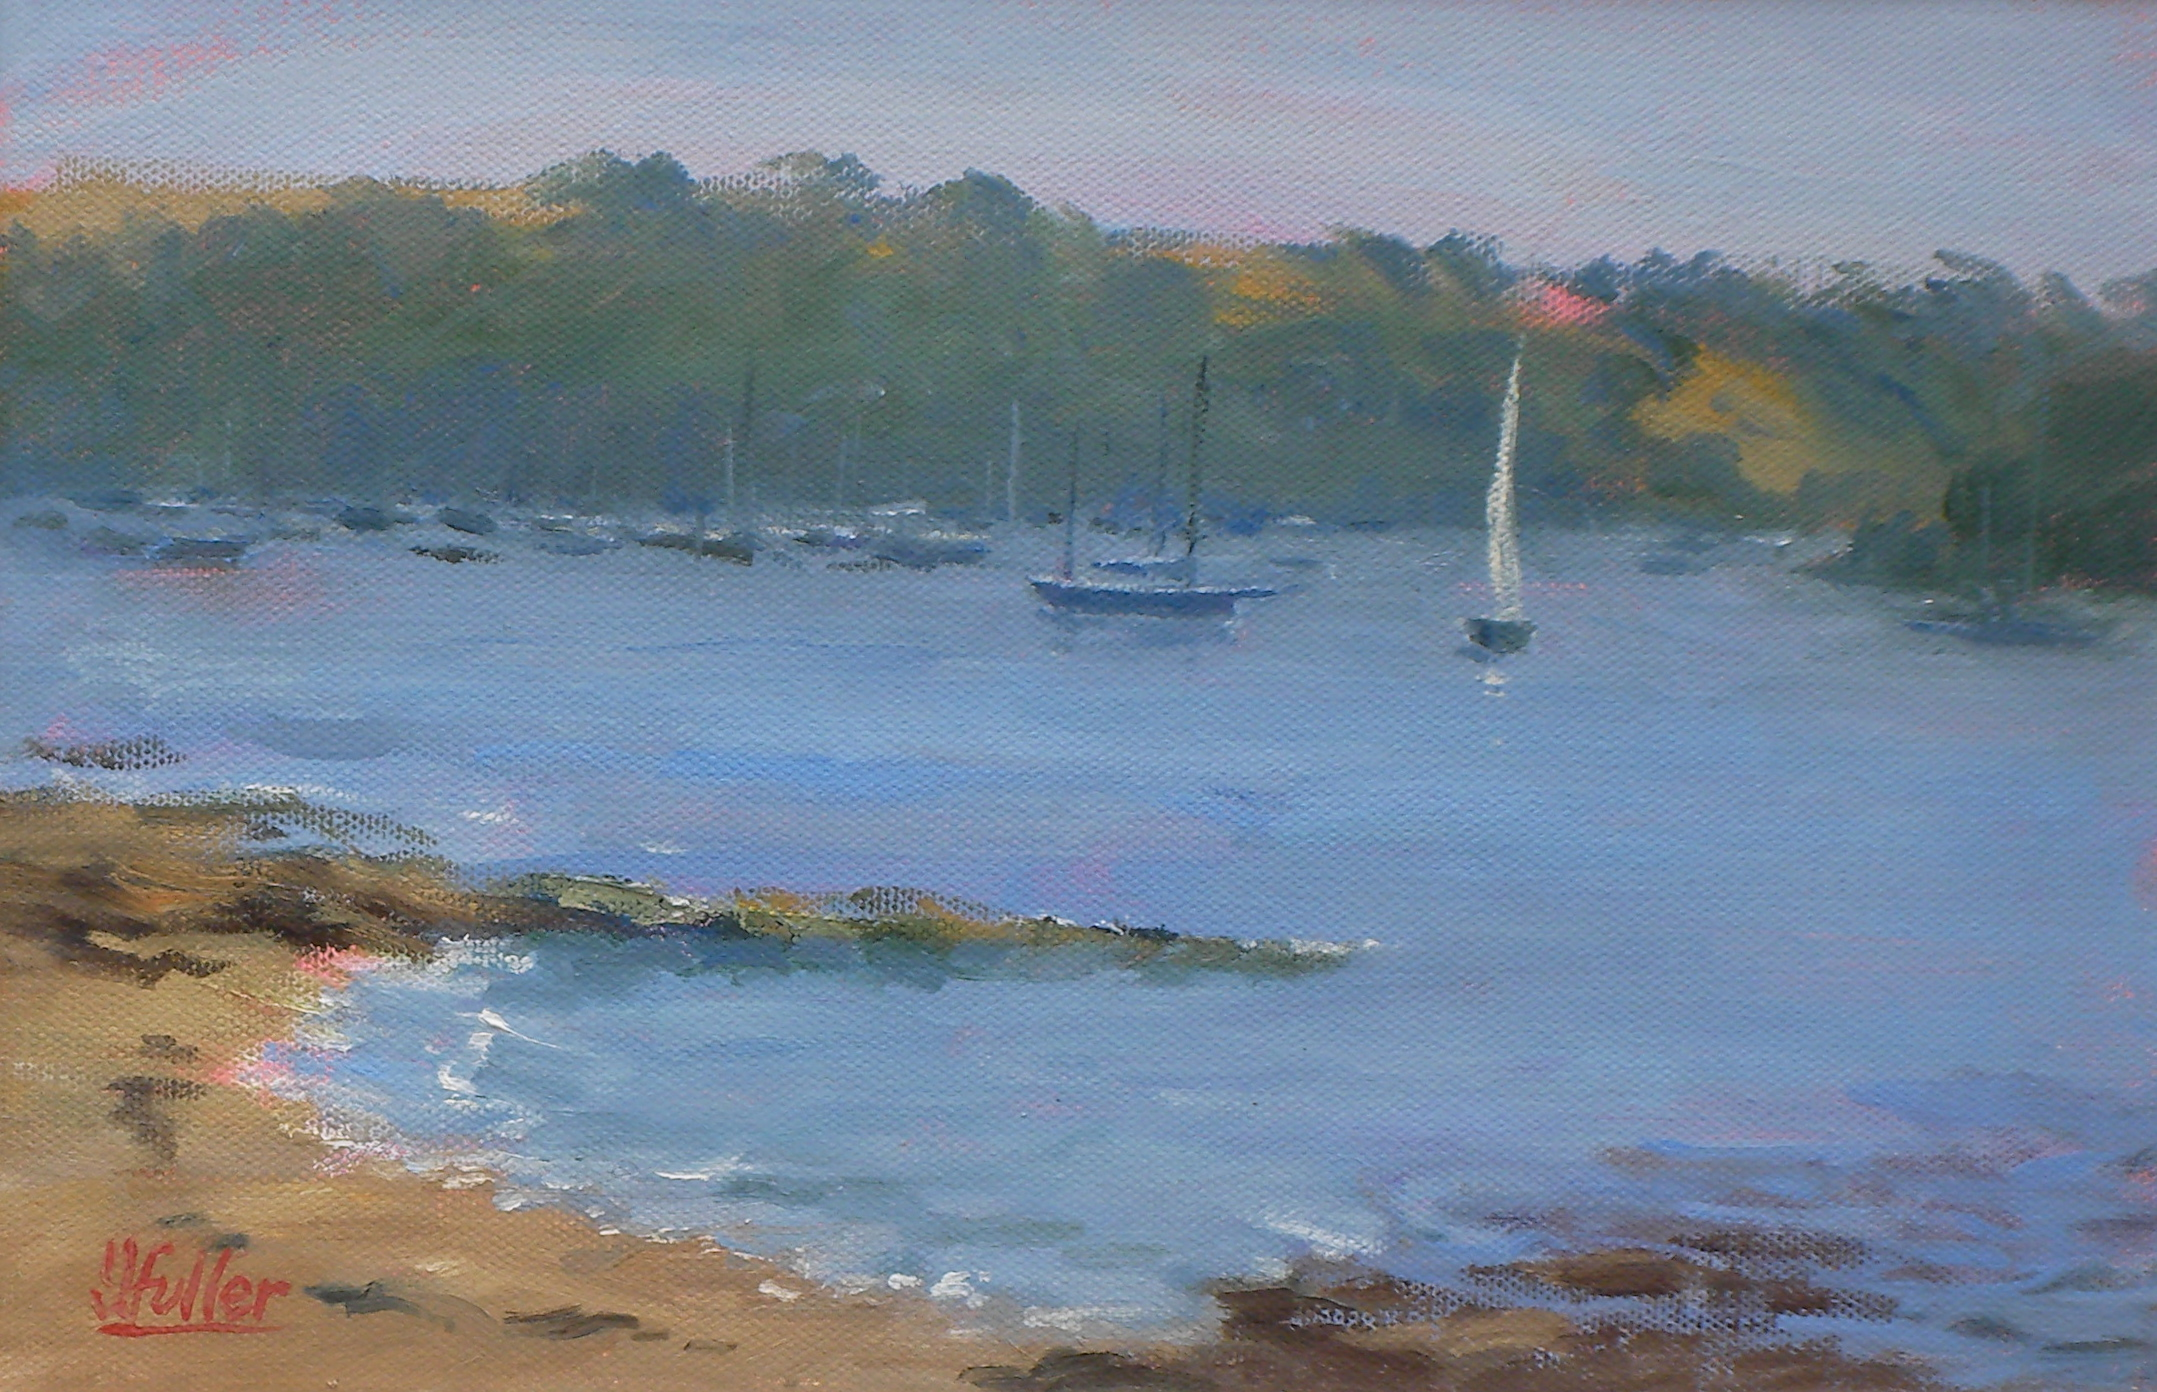 718-White-Sail-Misty-Morning.St-Mawes